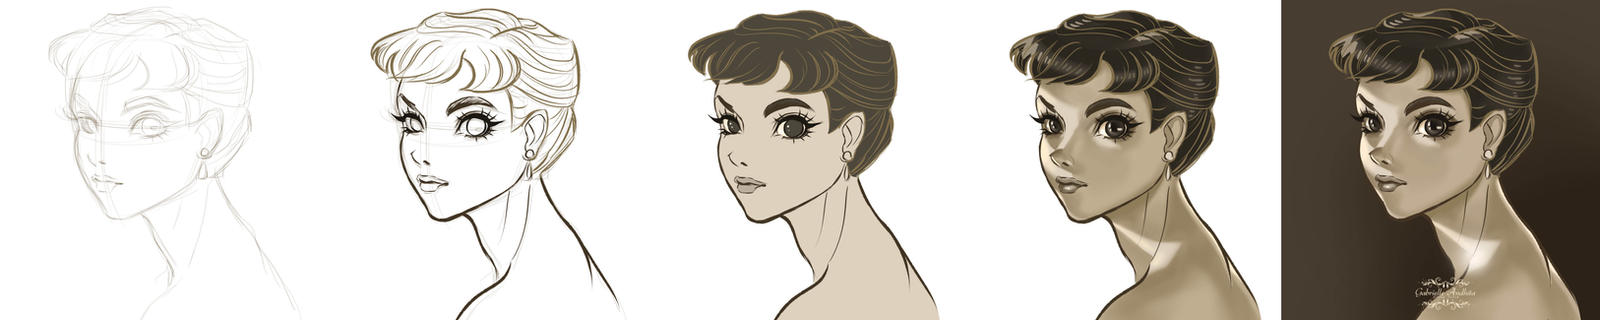 Step-by-step of Audrey Hepburn's drawing by gabrielleandhita